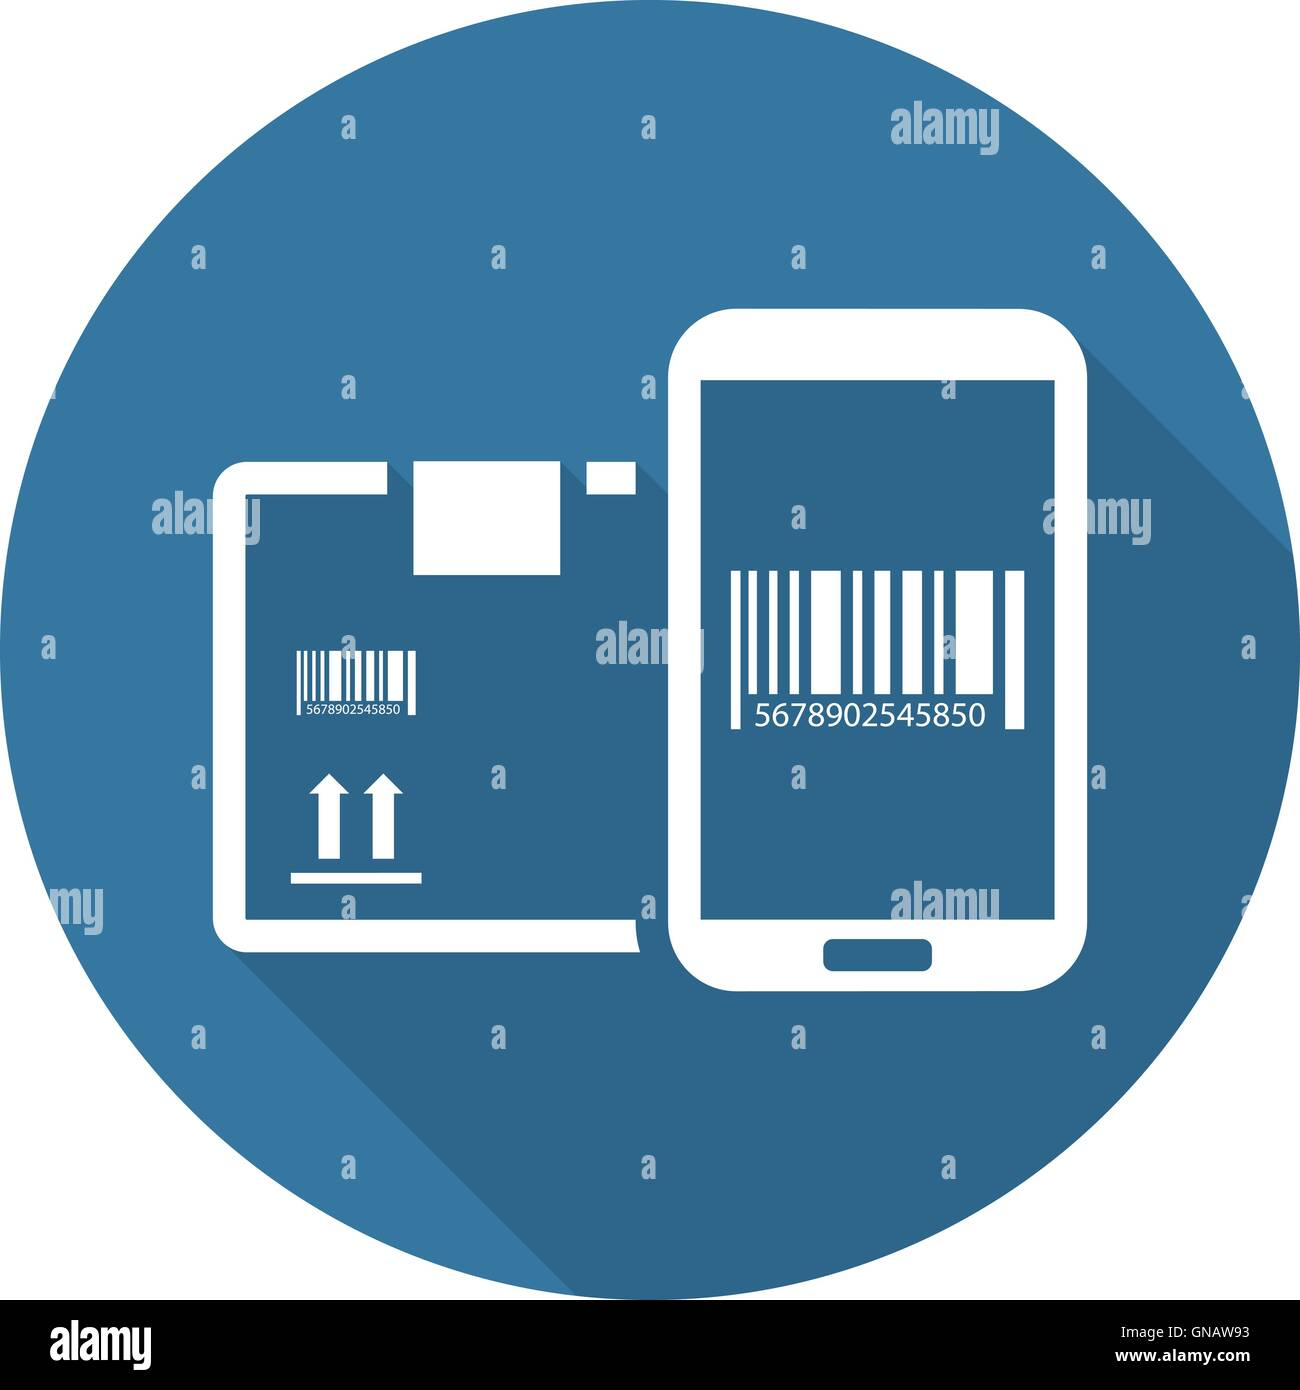 mobile tracking services icon flat design stock vector art